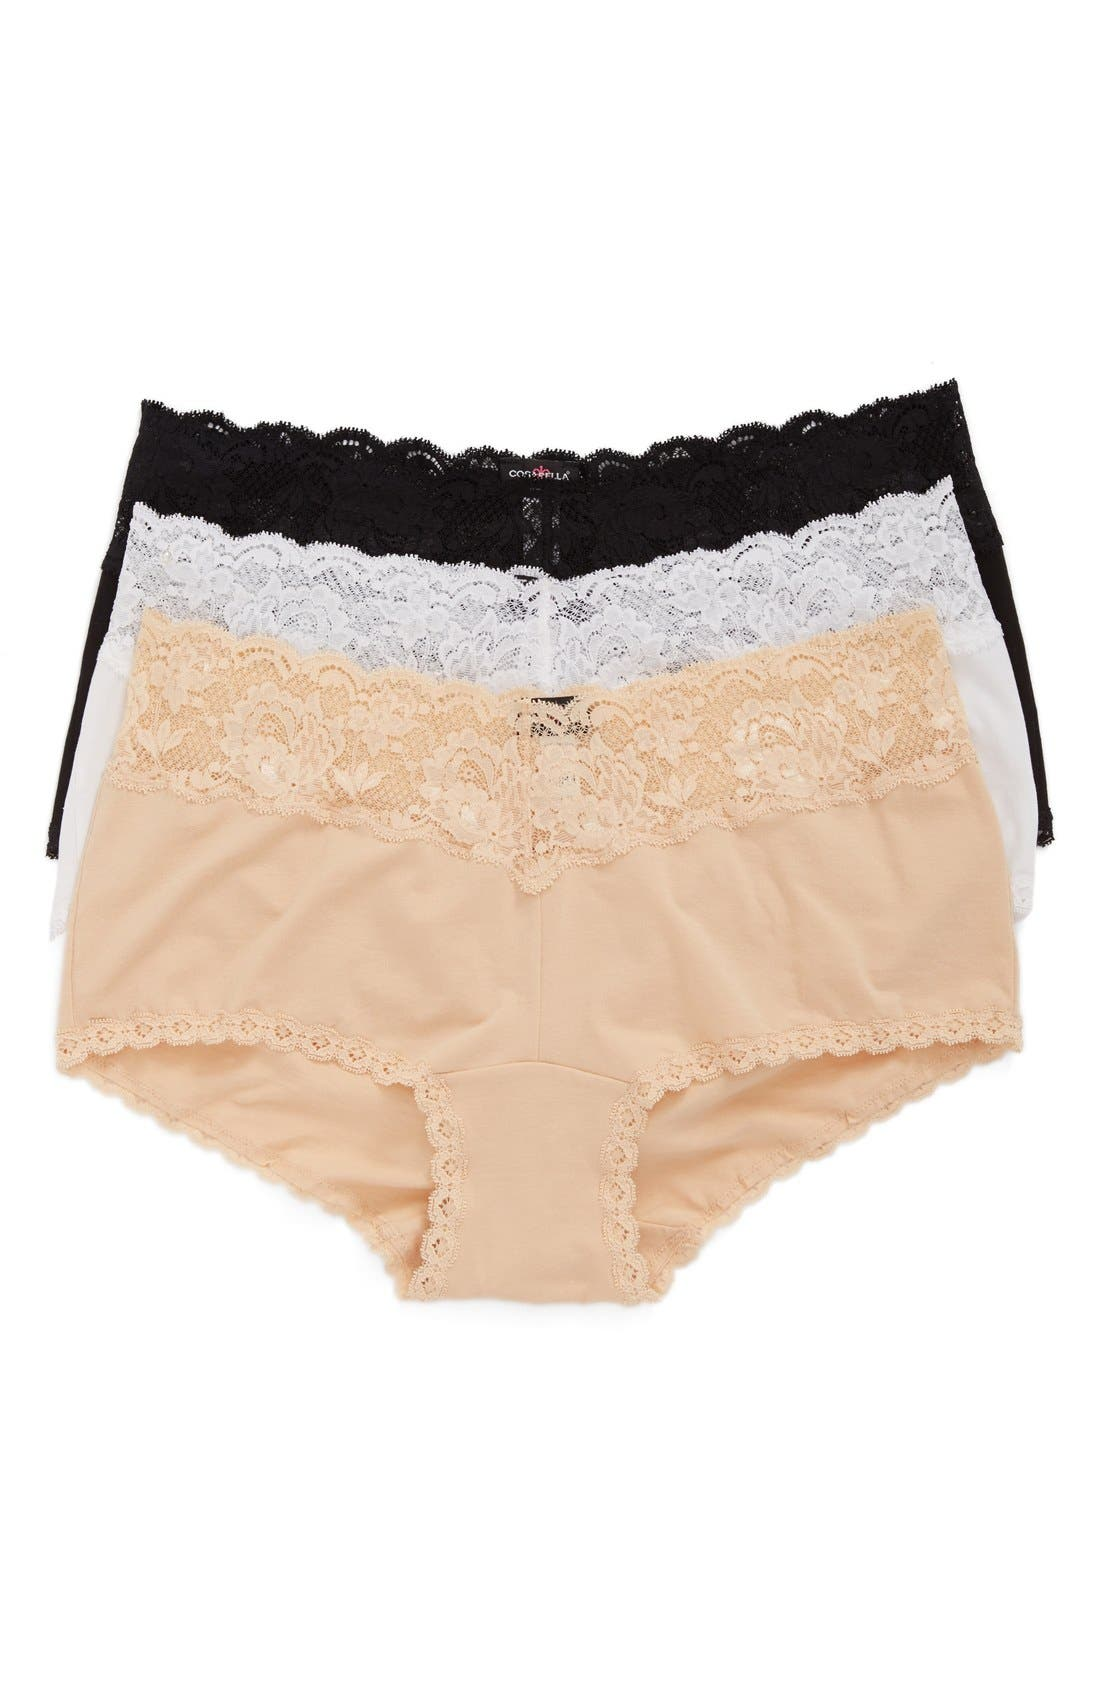 'Cheekie' Lace Trim Briefs,                         Main,                         color, Black/ White/ Blush